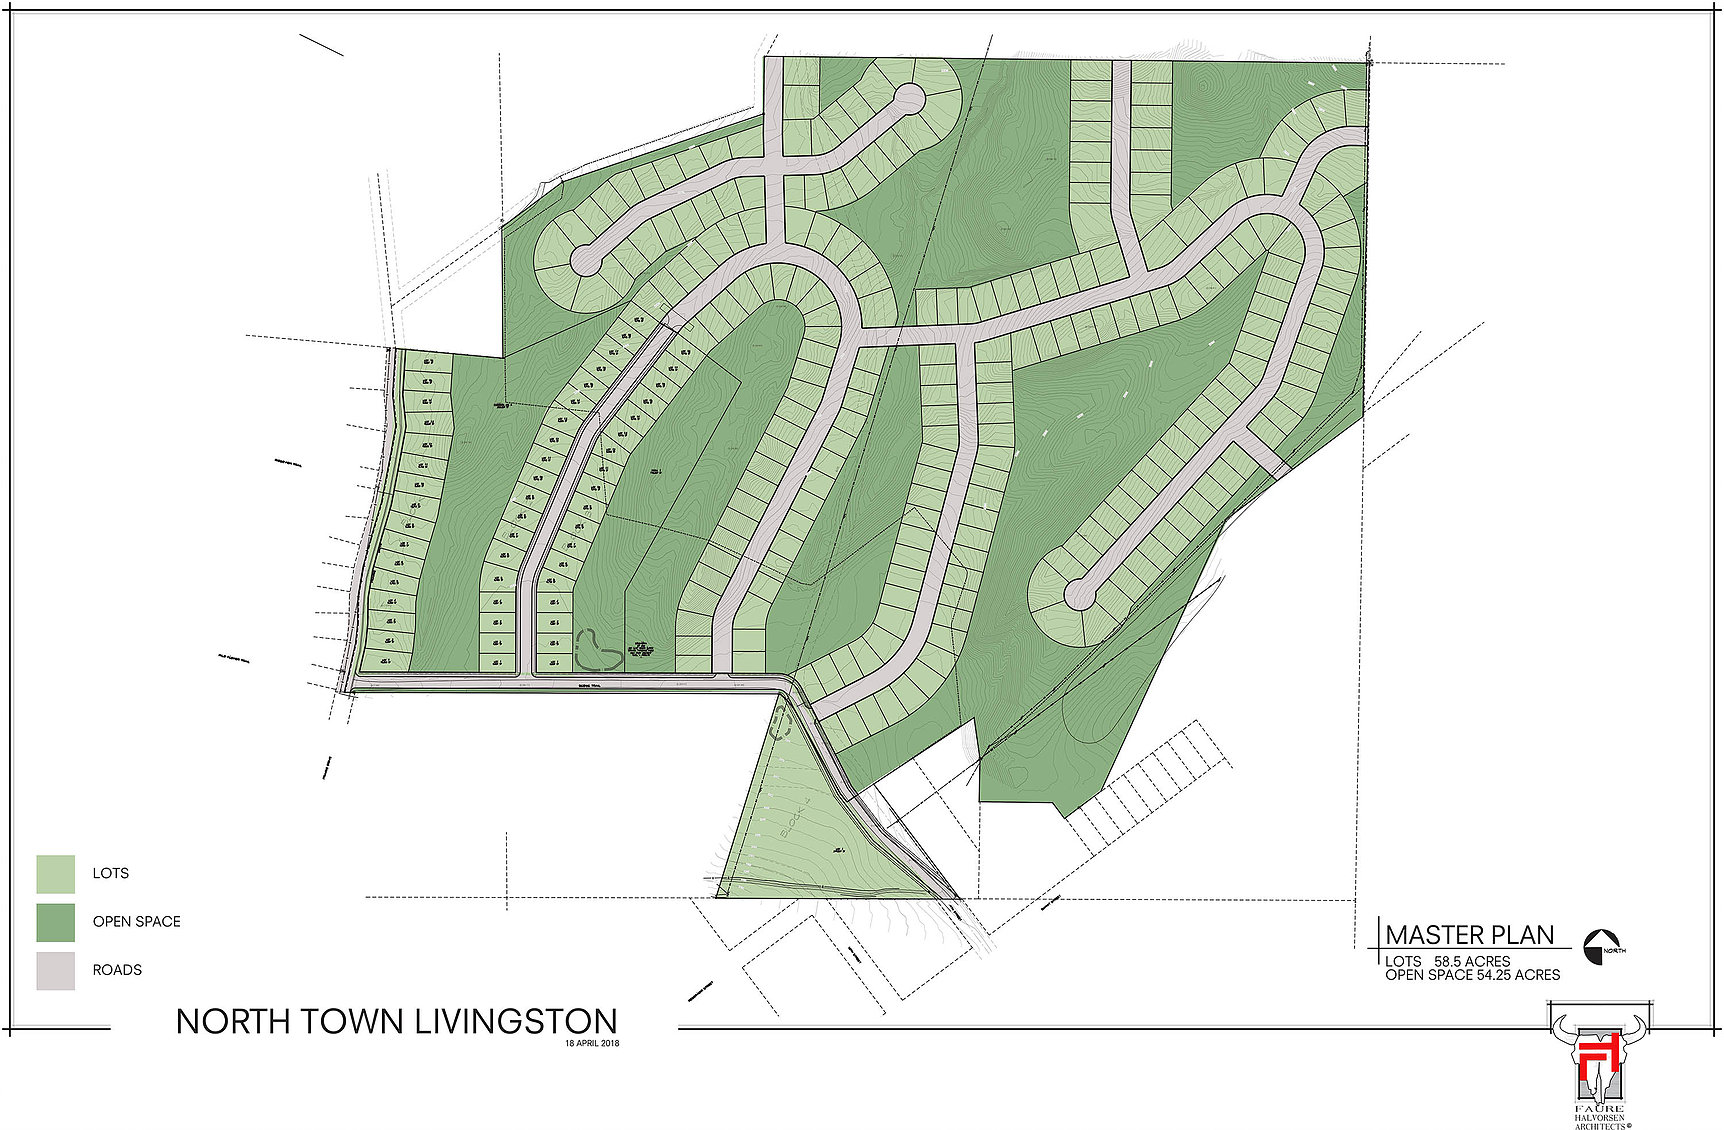 Northtown Livingston Phase Master Schematic